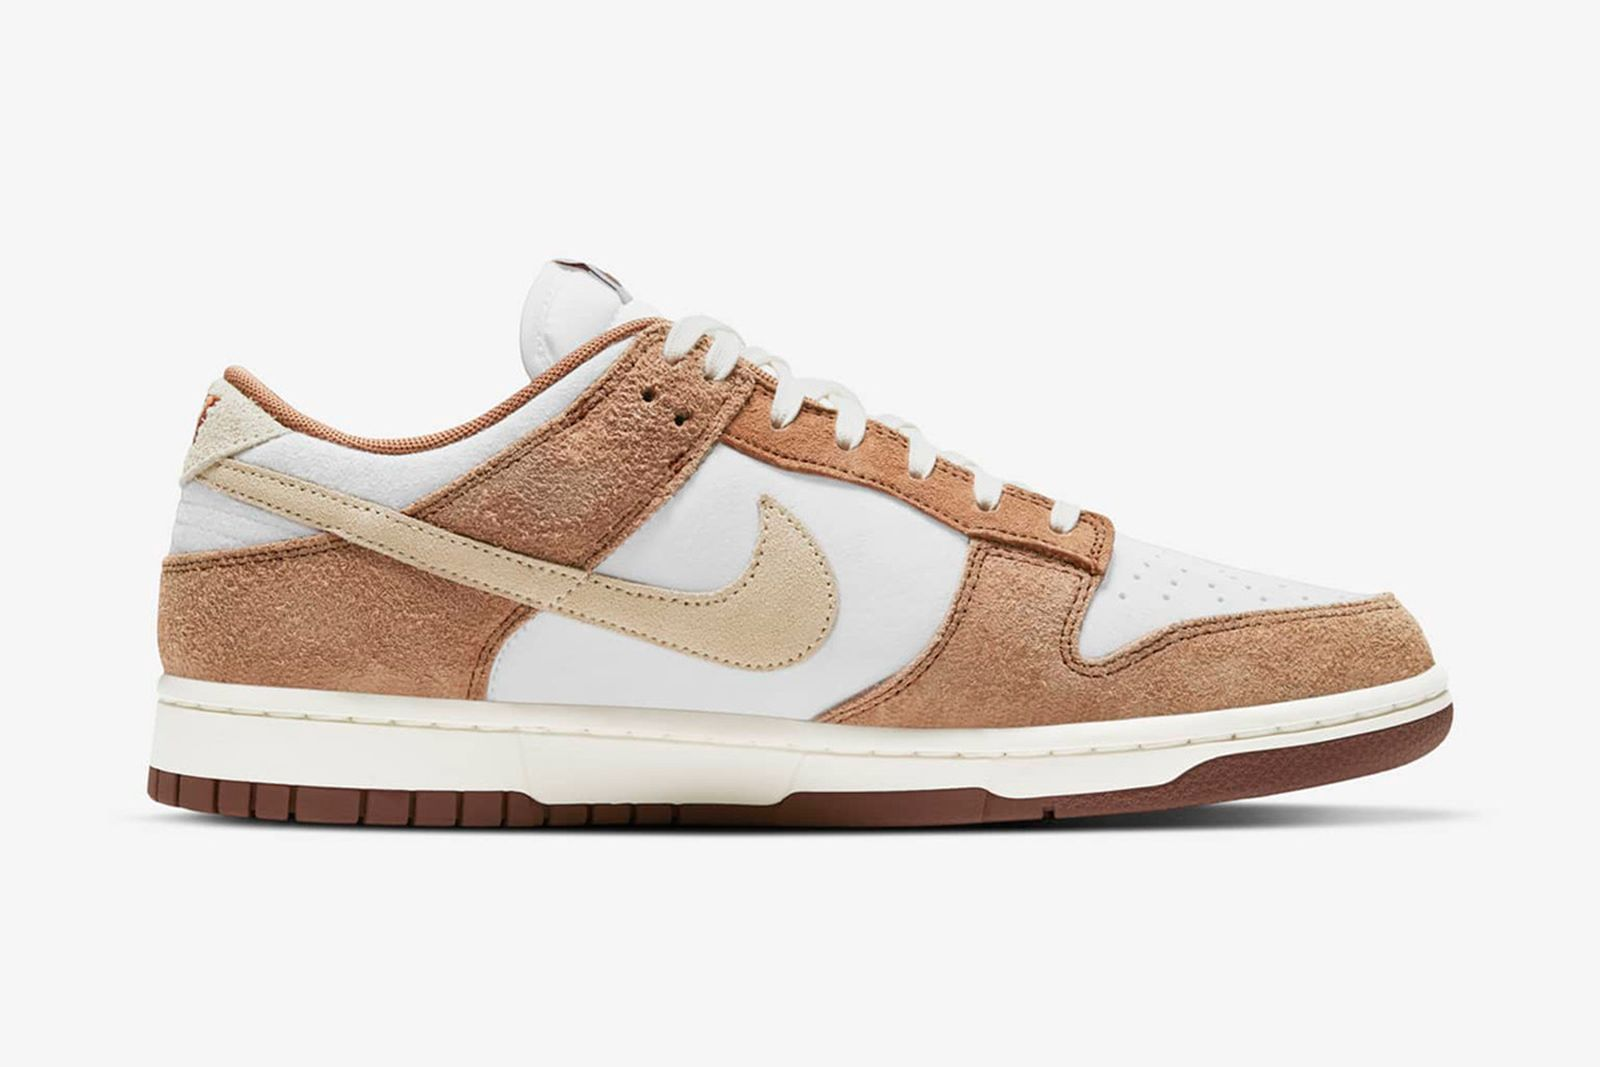 nike-dunk-low-medium-curry-release-info-04